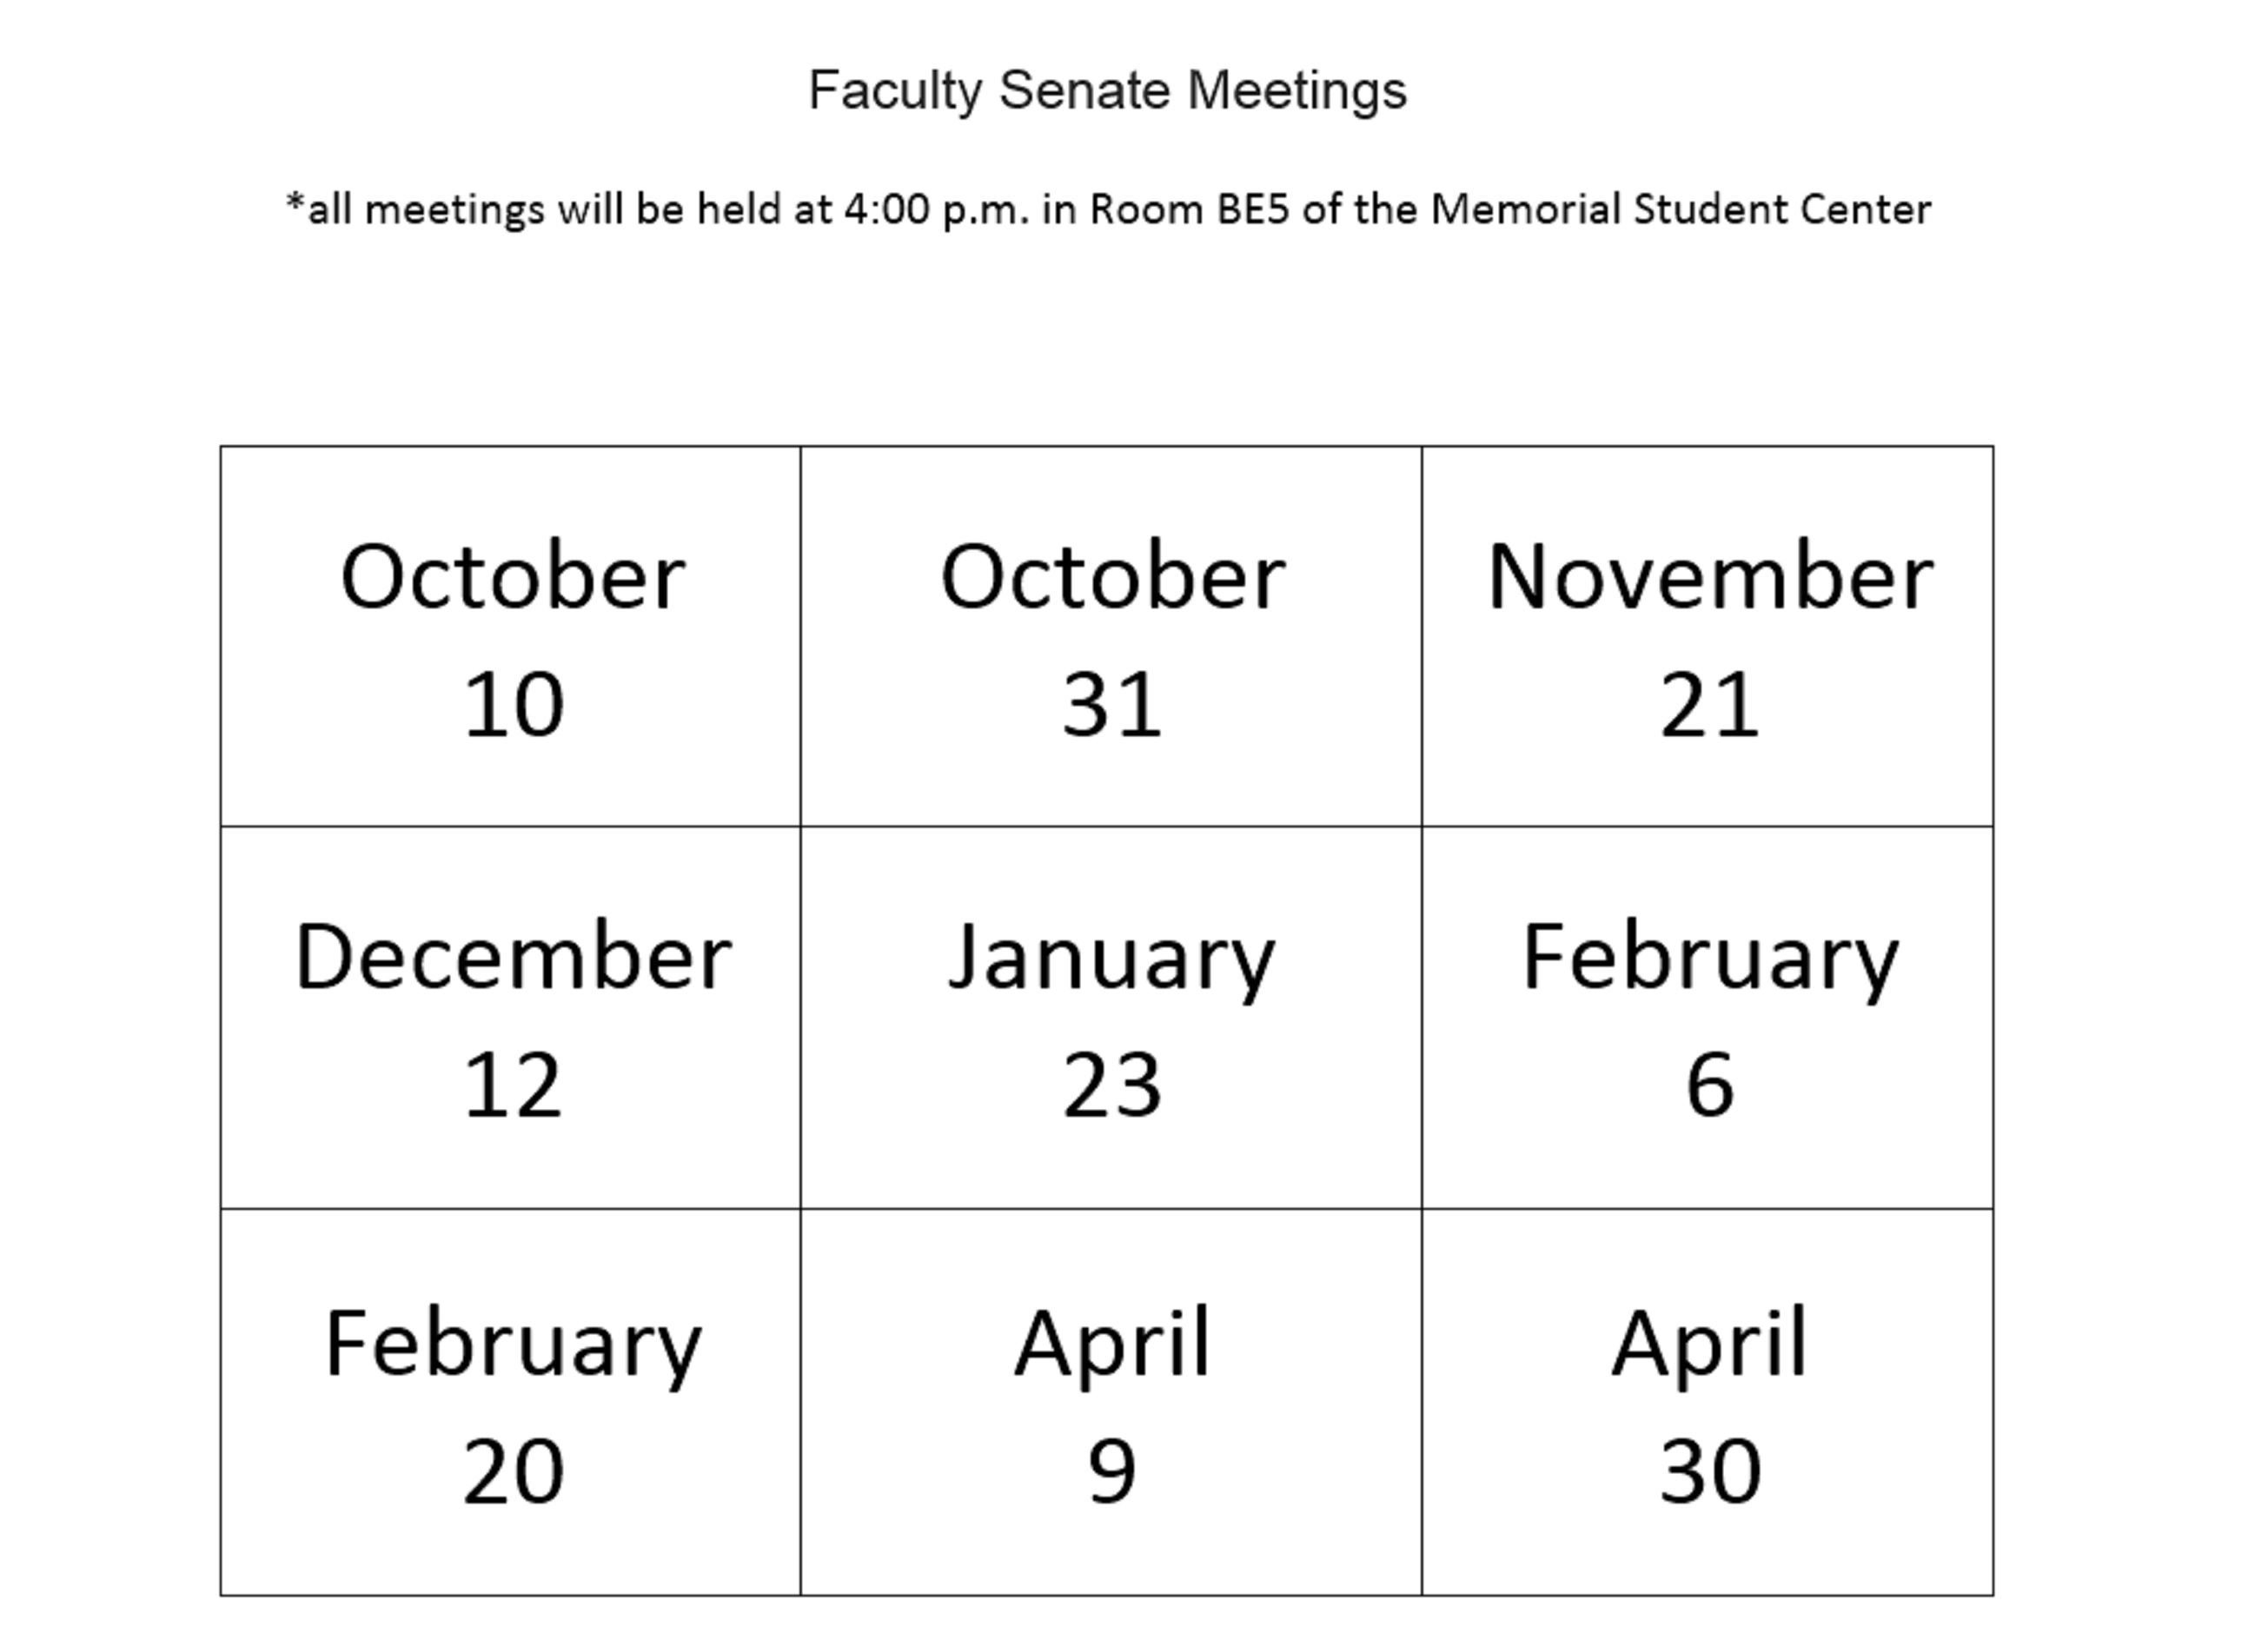 Senate 2020 Calendar Faculty Senate Calendar   Faculty Senate   Marshall University